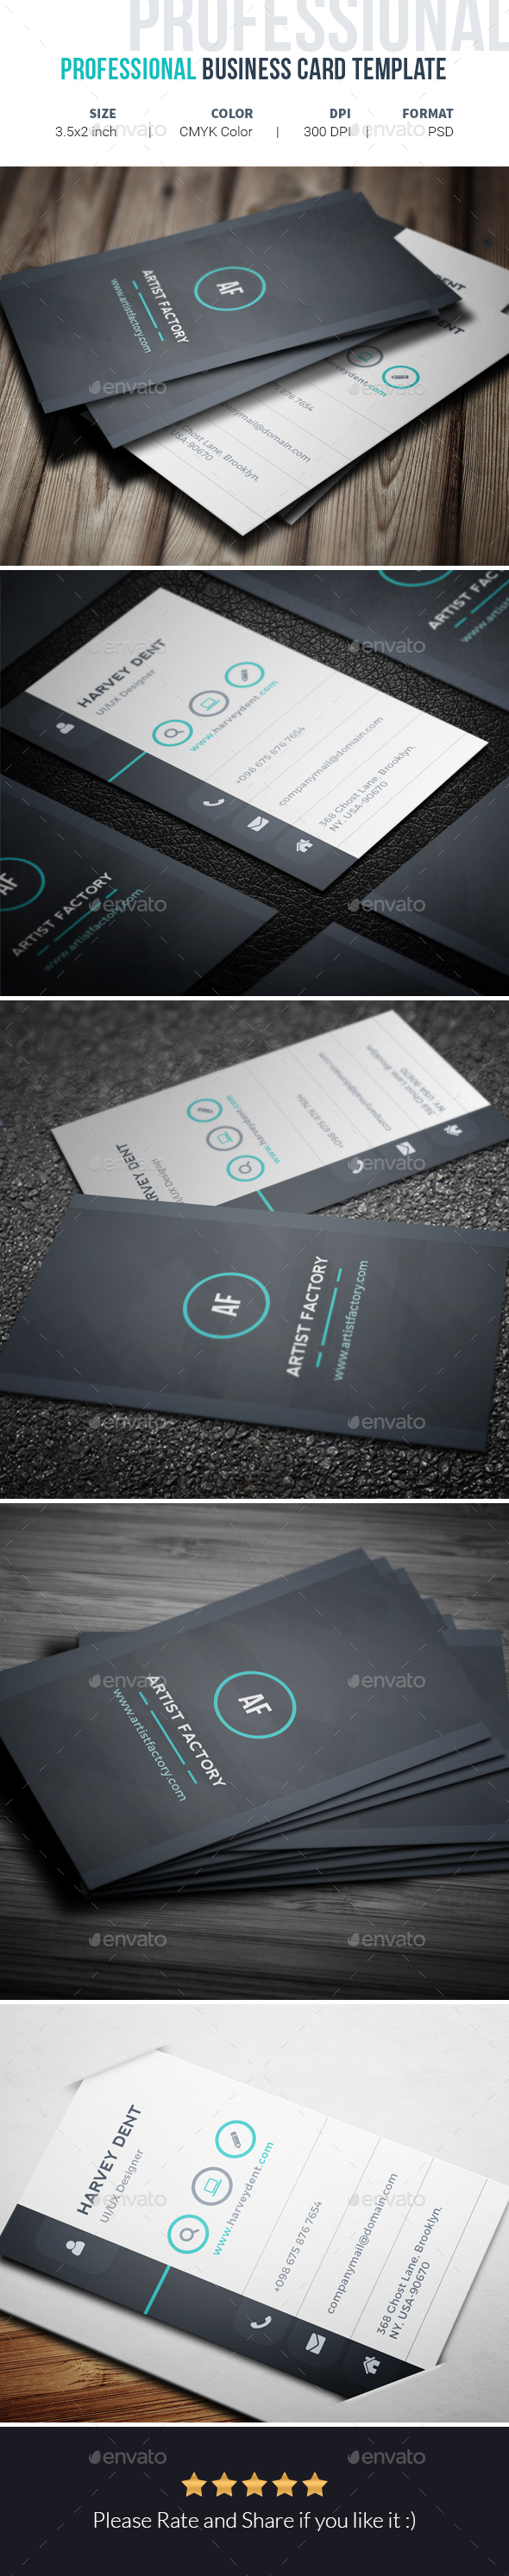 Professional Business Card Template - Corporate Business Cards